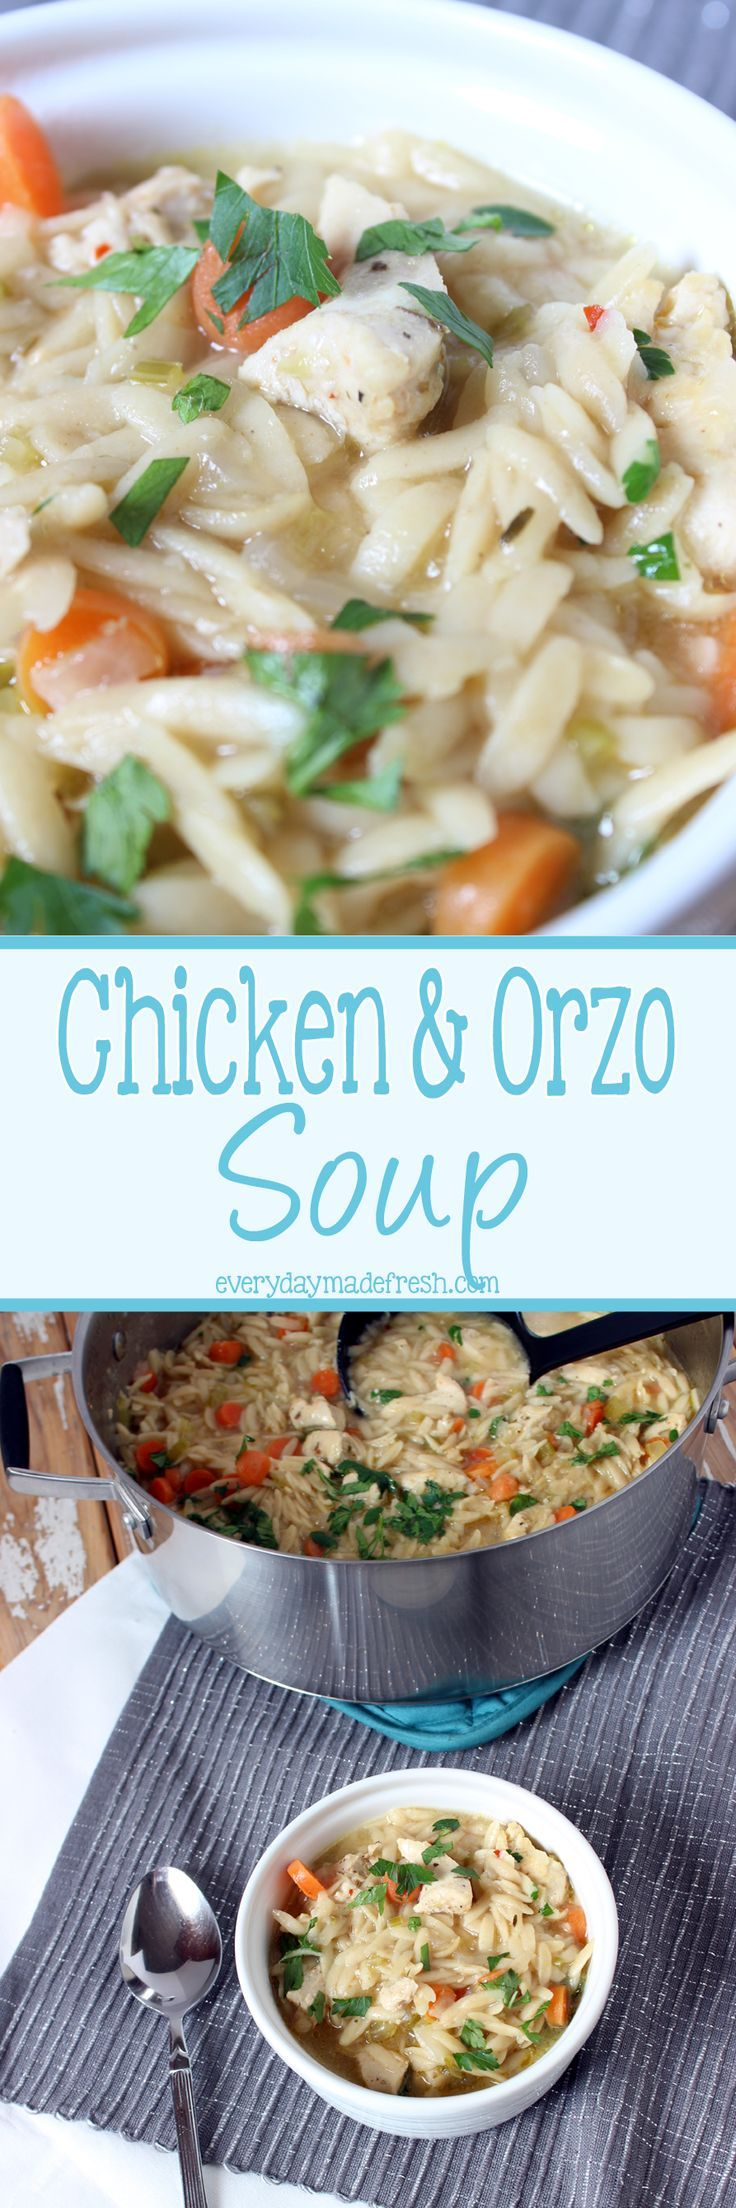 Take the noodles out of the soup, because this Chicken and Orzo Soup is the best thing that ever happened! | EverydayMadeFresh.com http://www.everydaymadefresh.com/chicken-orzo-soup/